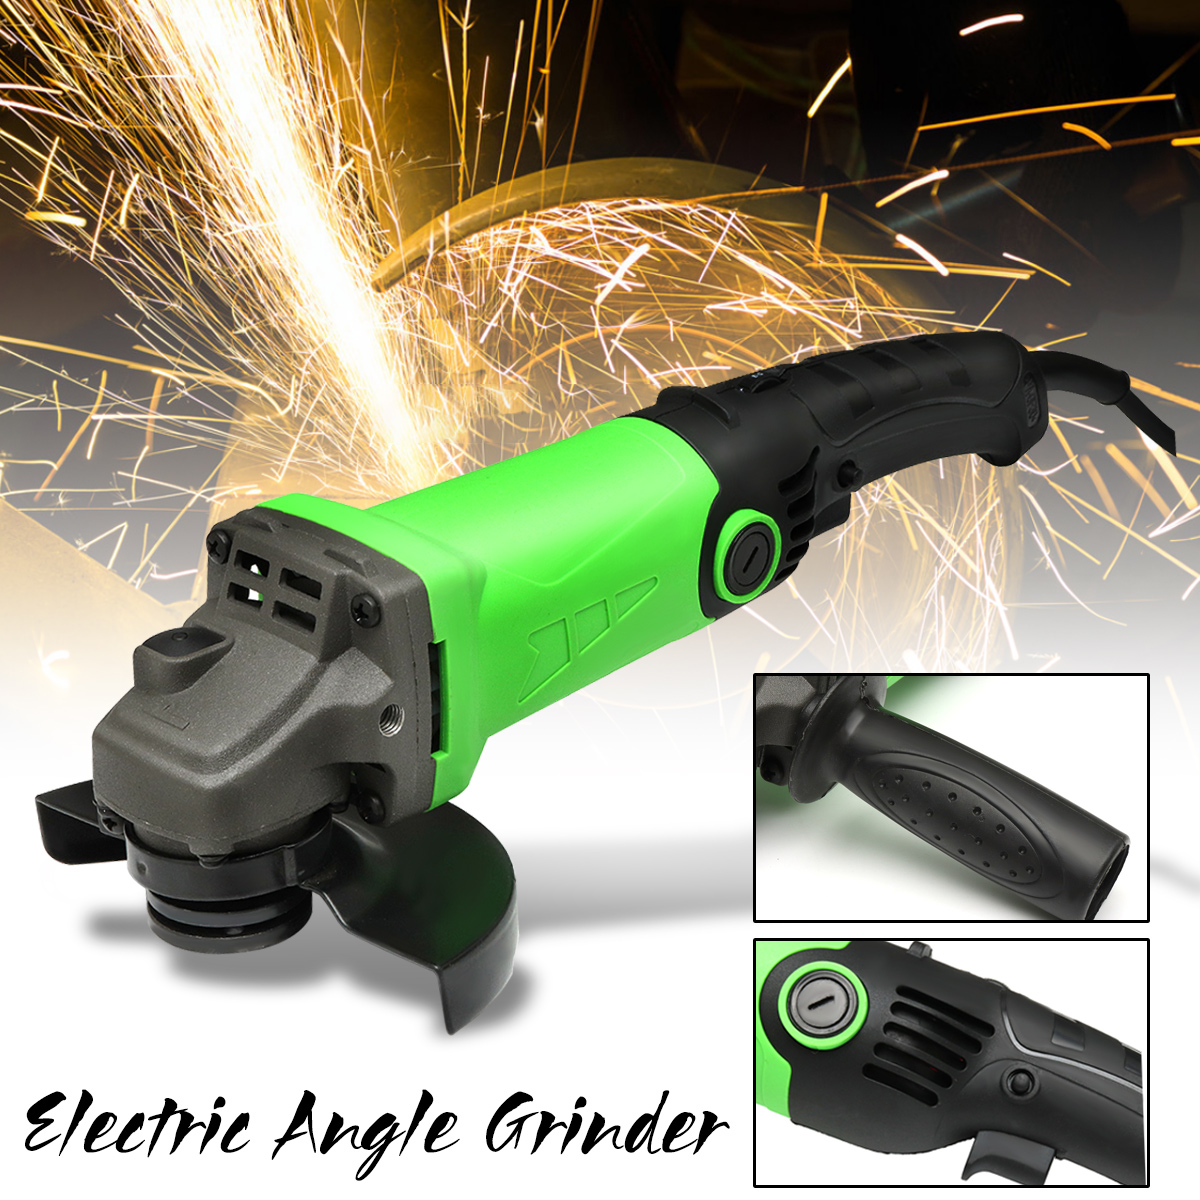 1Pcs 1200W Multi-function Angle Grinder 6 Levels Speed Adjustable Polishing Machine Refit Angle Grind Grinding Drilling Tools multi function 240w electrical tools variable speed grinding tools electric grinders polishing engraving drilling tools set